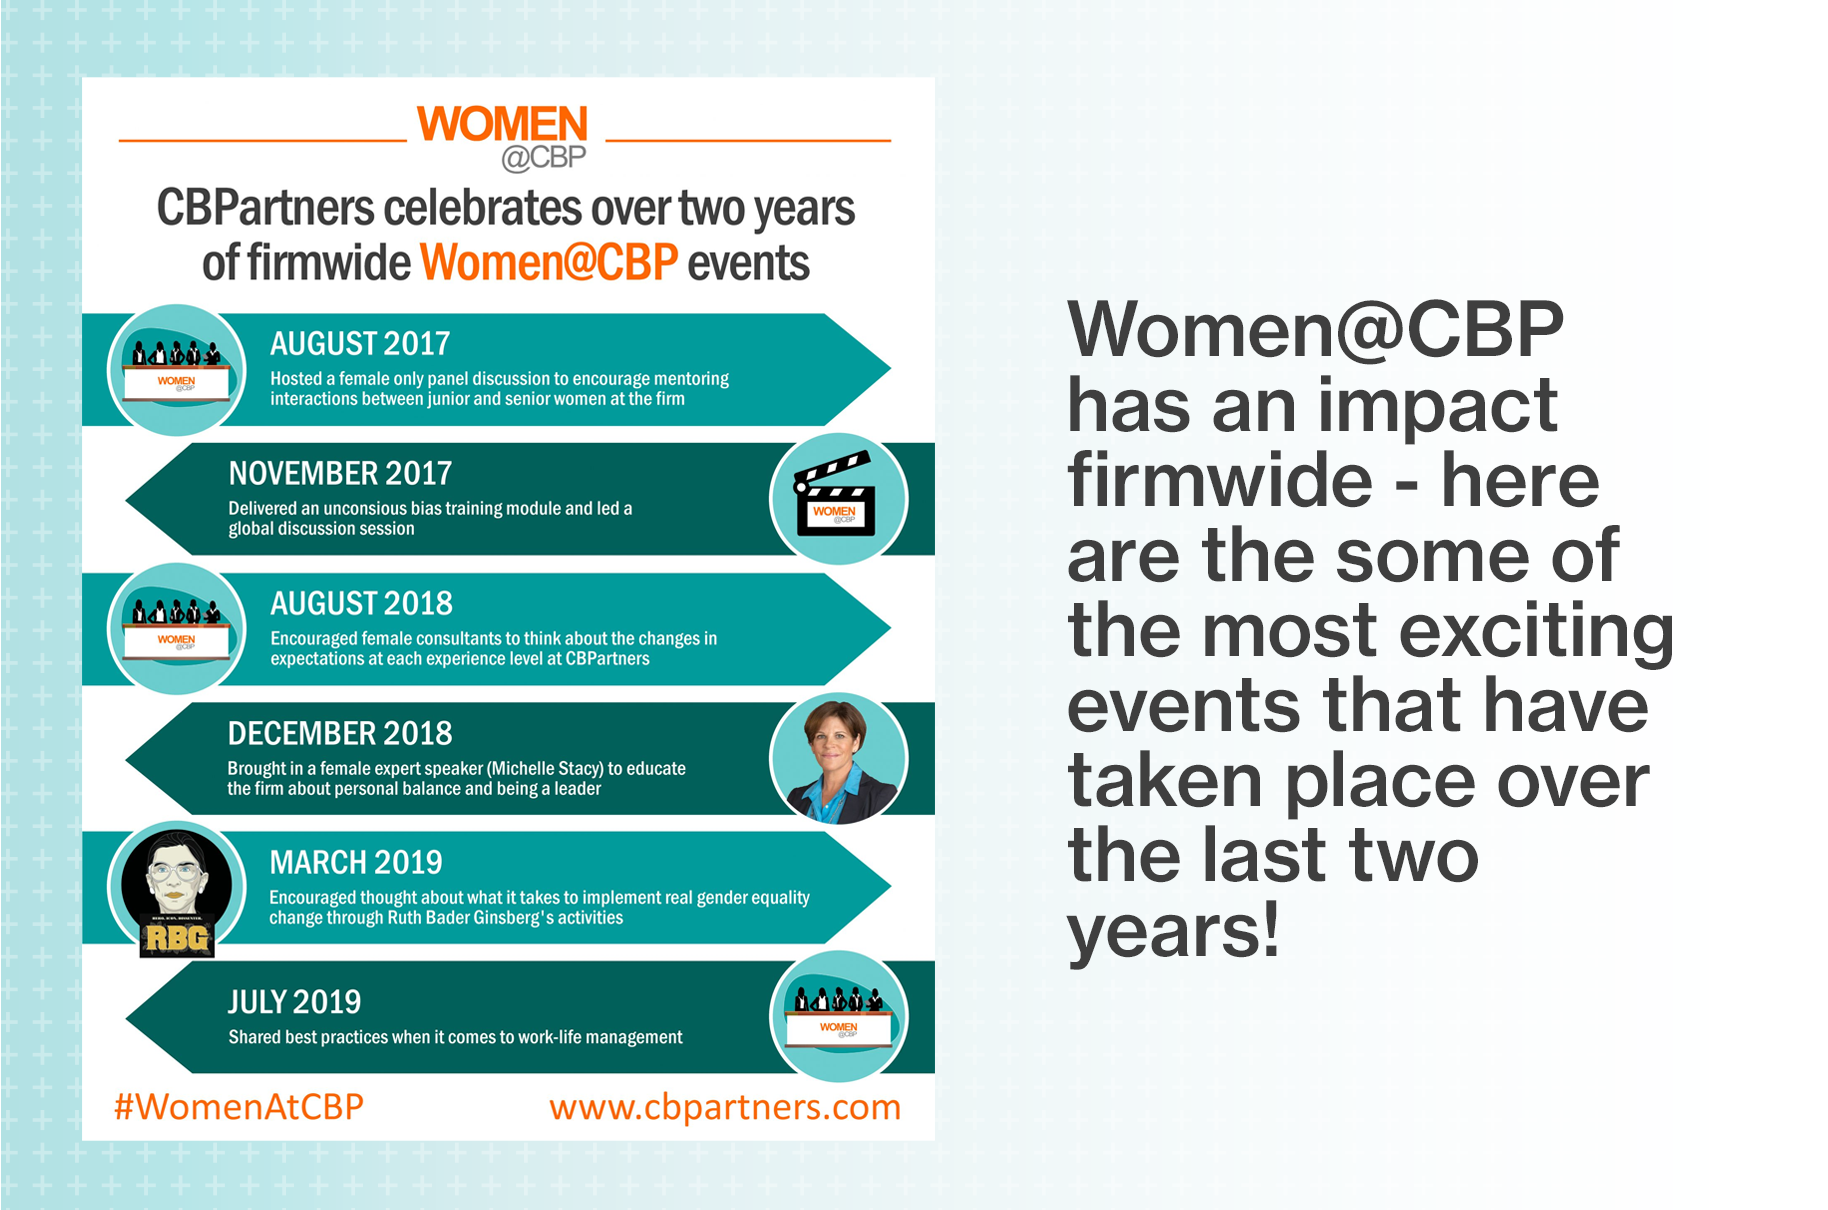 Women@CBP calendar of events infographic cover image